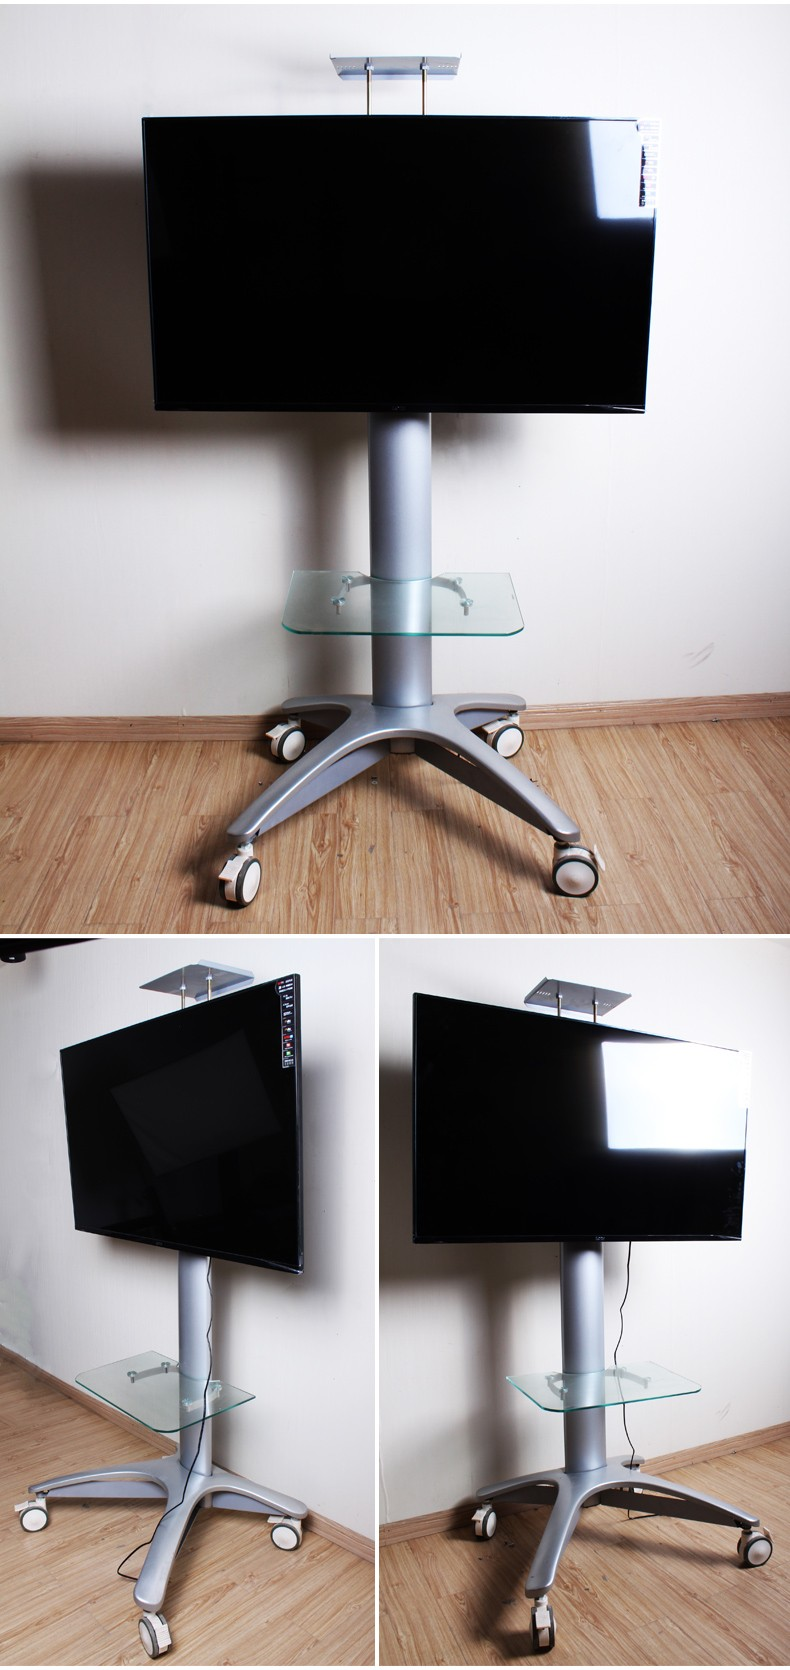 Universal Mobile TV Carrello Supporto per LED, LCD, Plasma, e ...